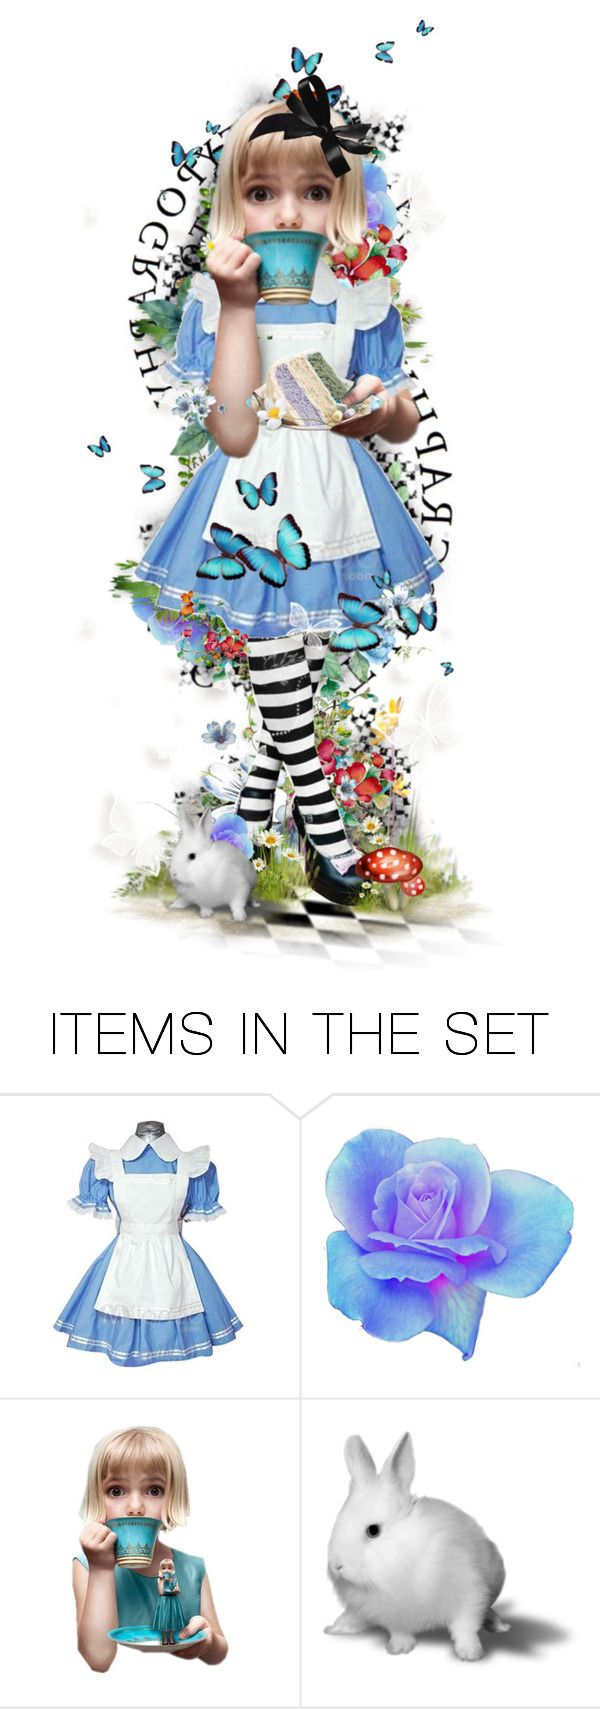 """""""Little Alice"""" by elsabear ❤ liked on Polyvore featuring art, alice, paper doll, white rabbit, wonderland, alice in wonderland and mad hatter"""